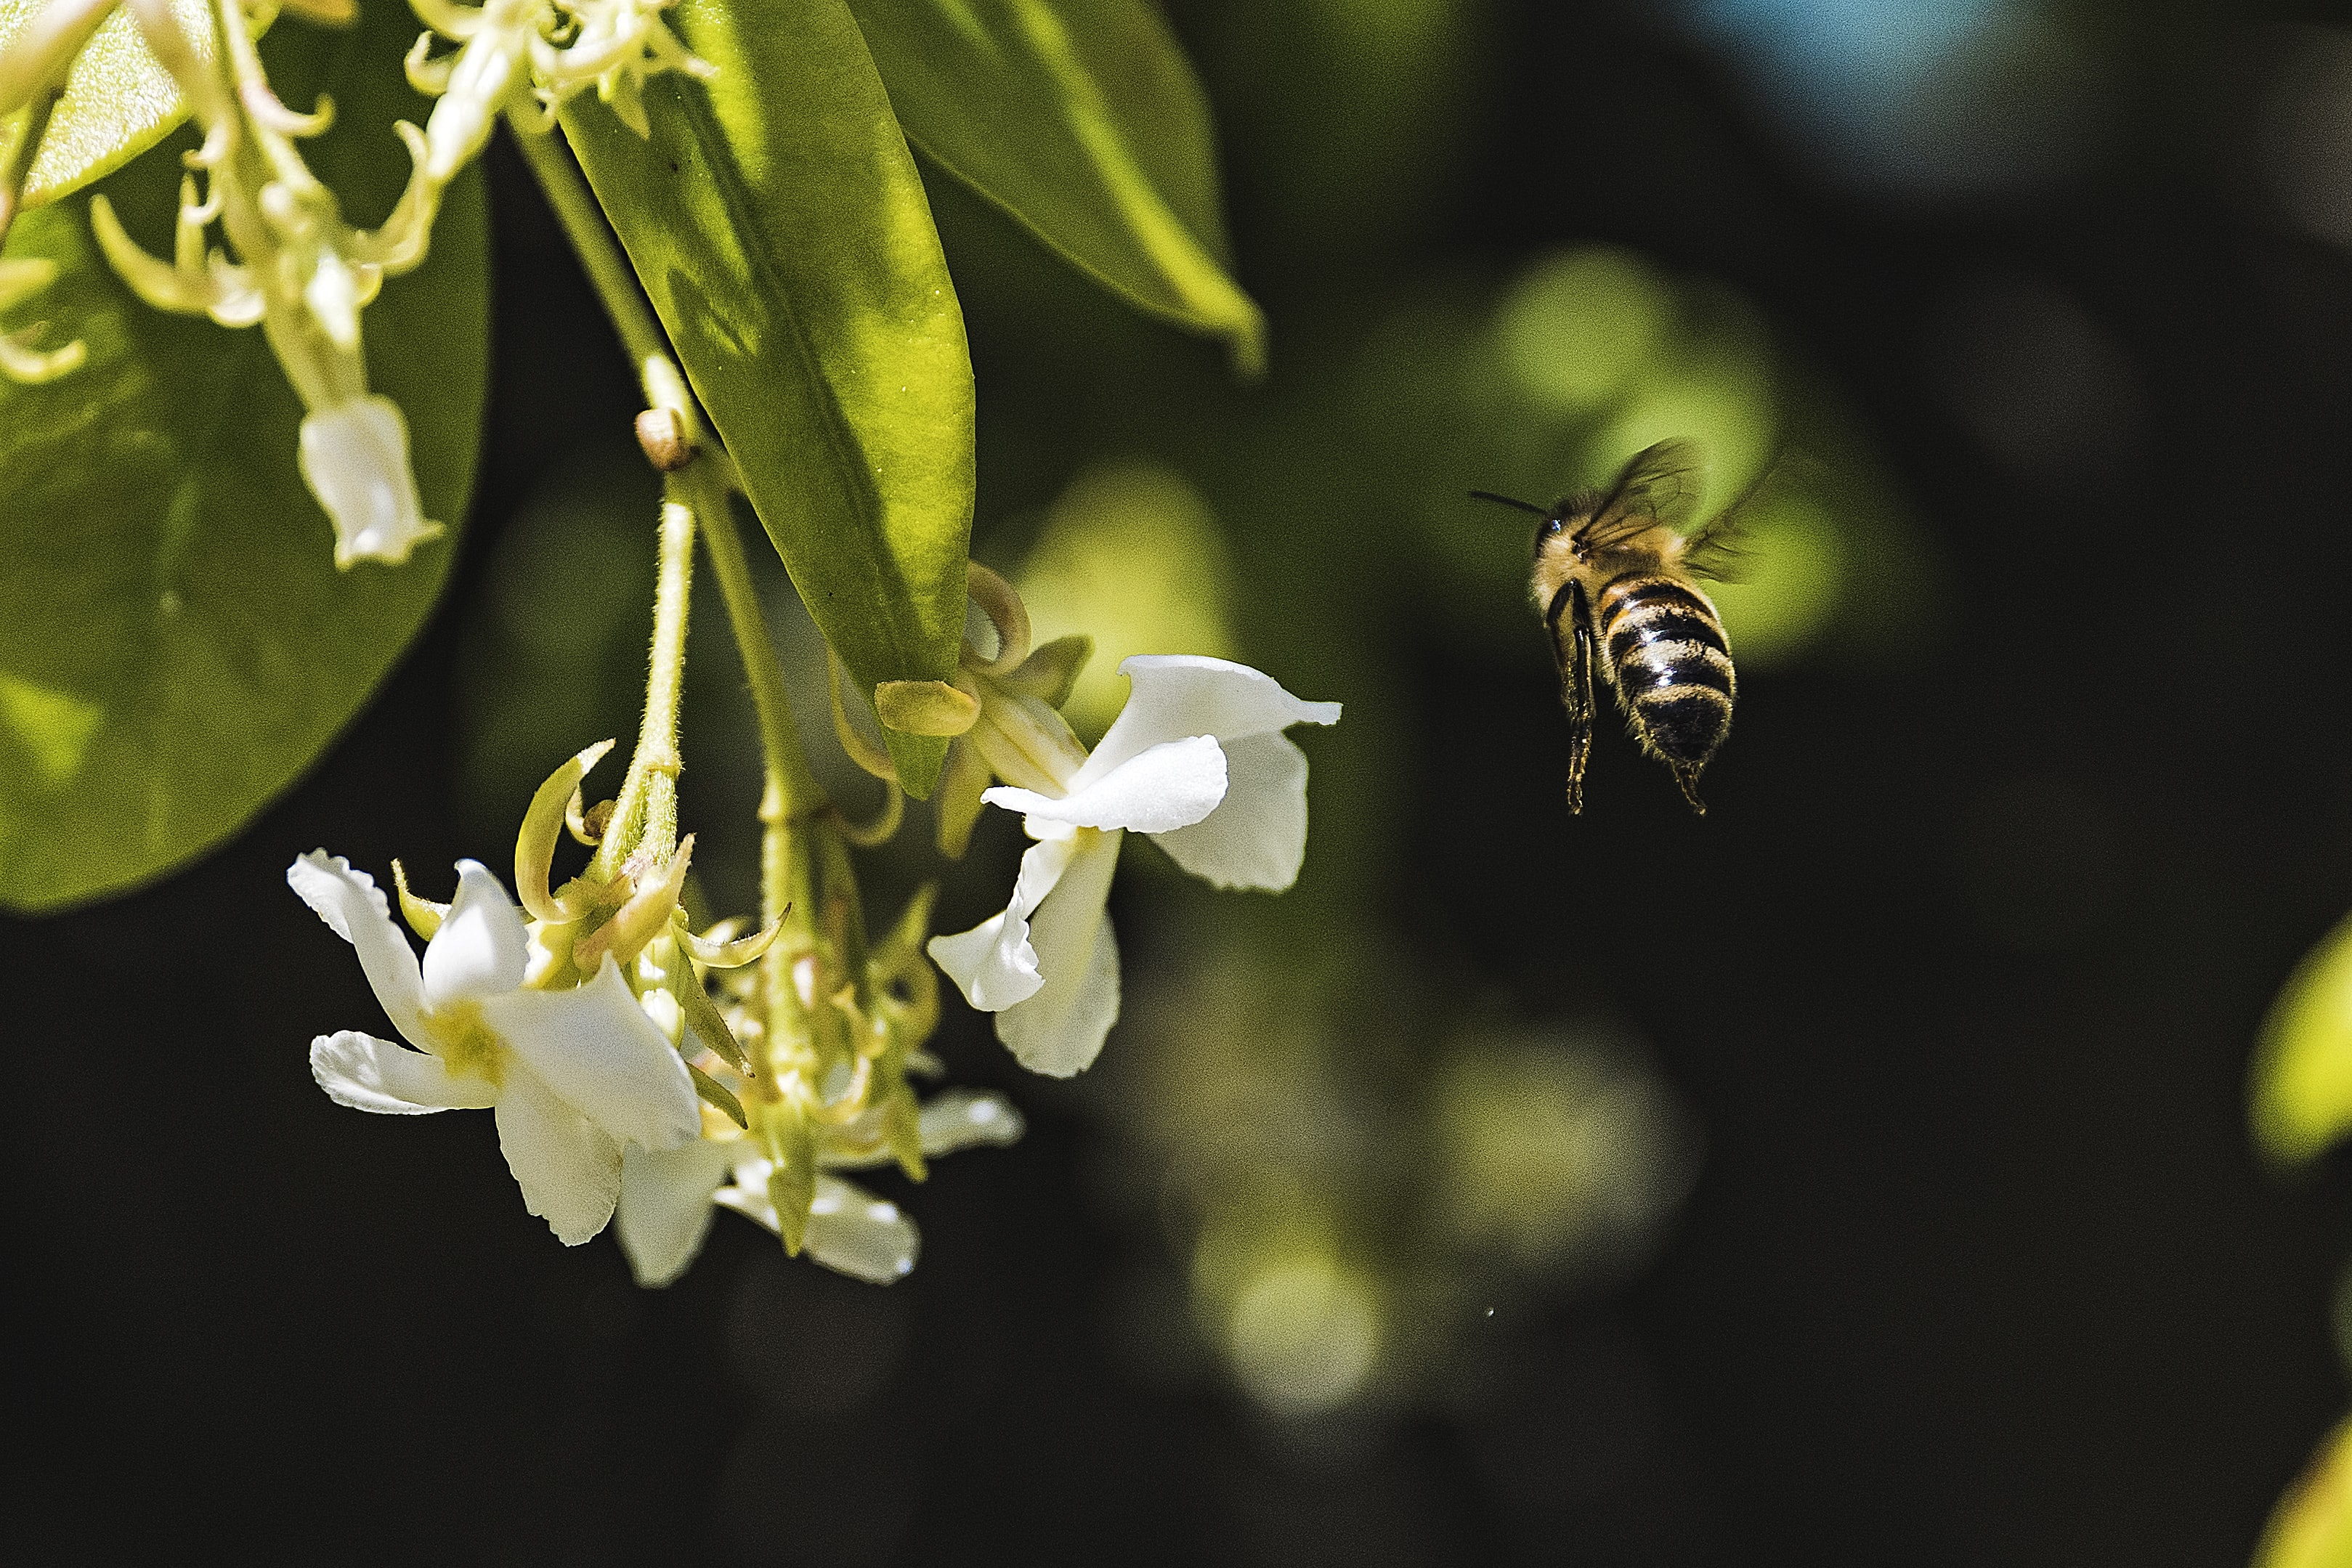 A bee in flight next to a bunch of small white flowers